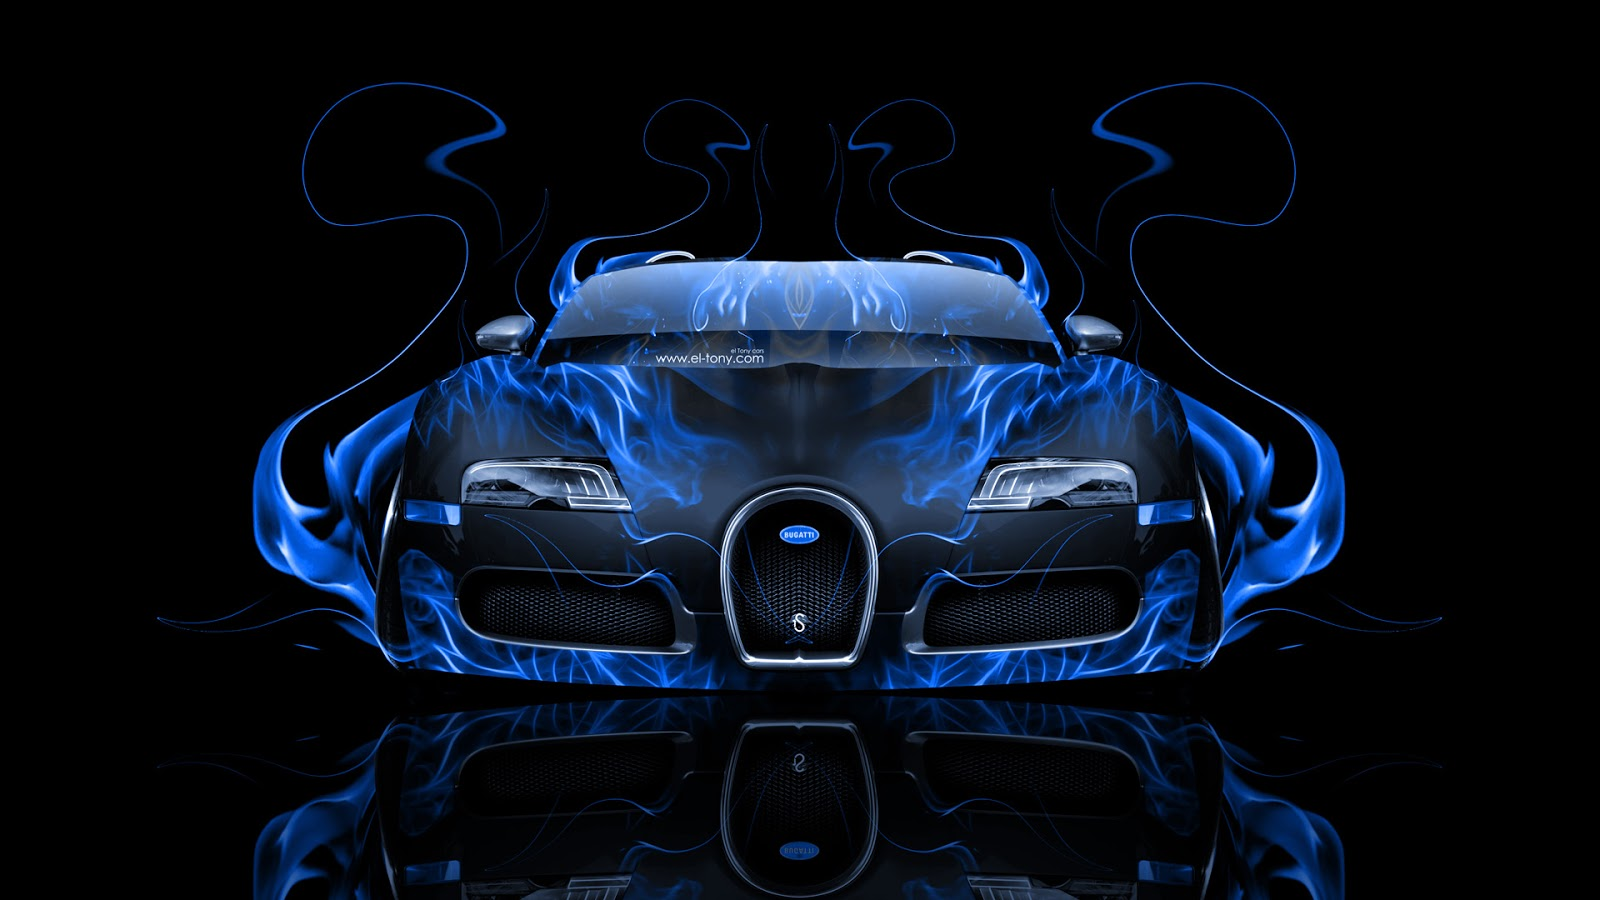 Cool Bugatti Wallpapers Backgrounds For Free Download Sonijem